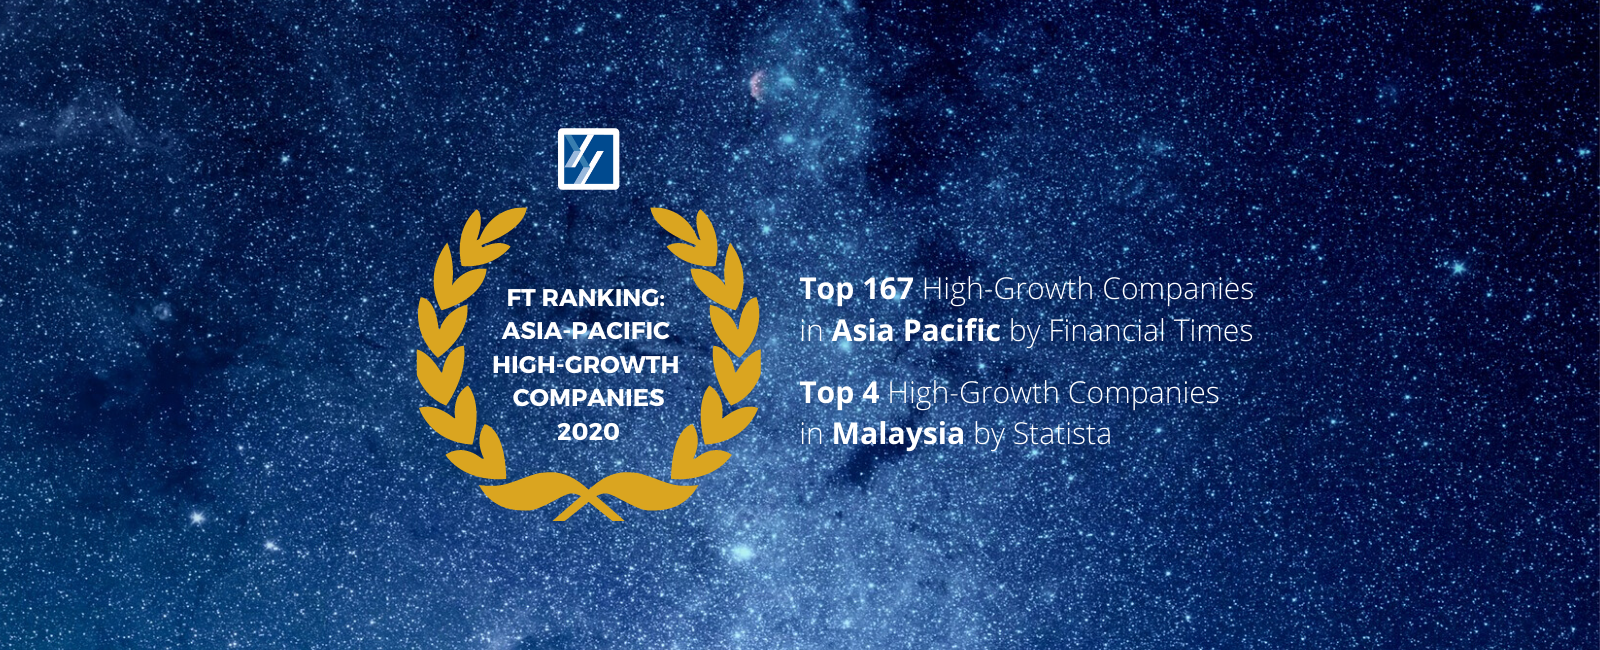 YNY Technology recognized by Financial Times as High-Growth Companies in Asia-Pacific 2020